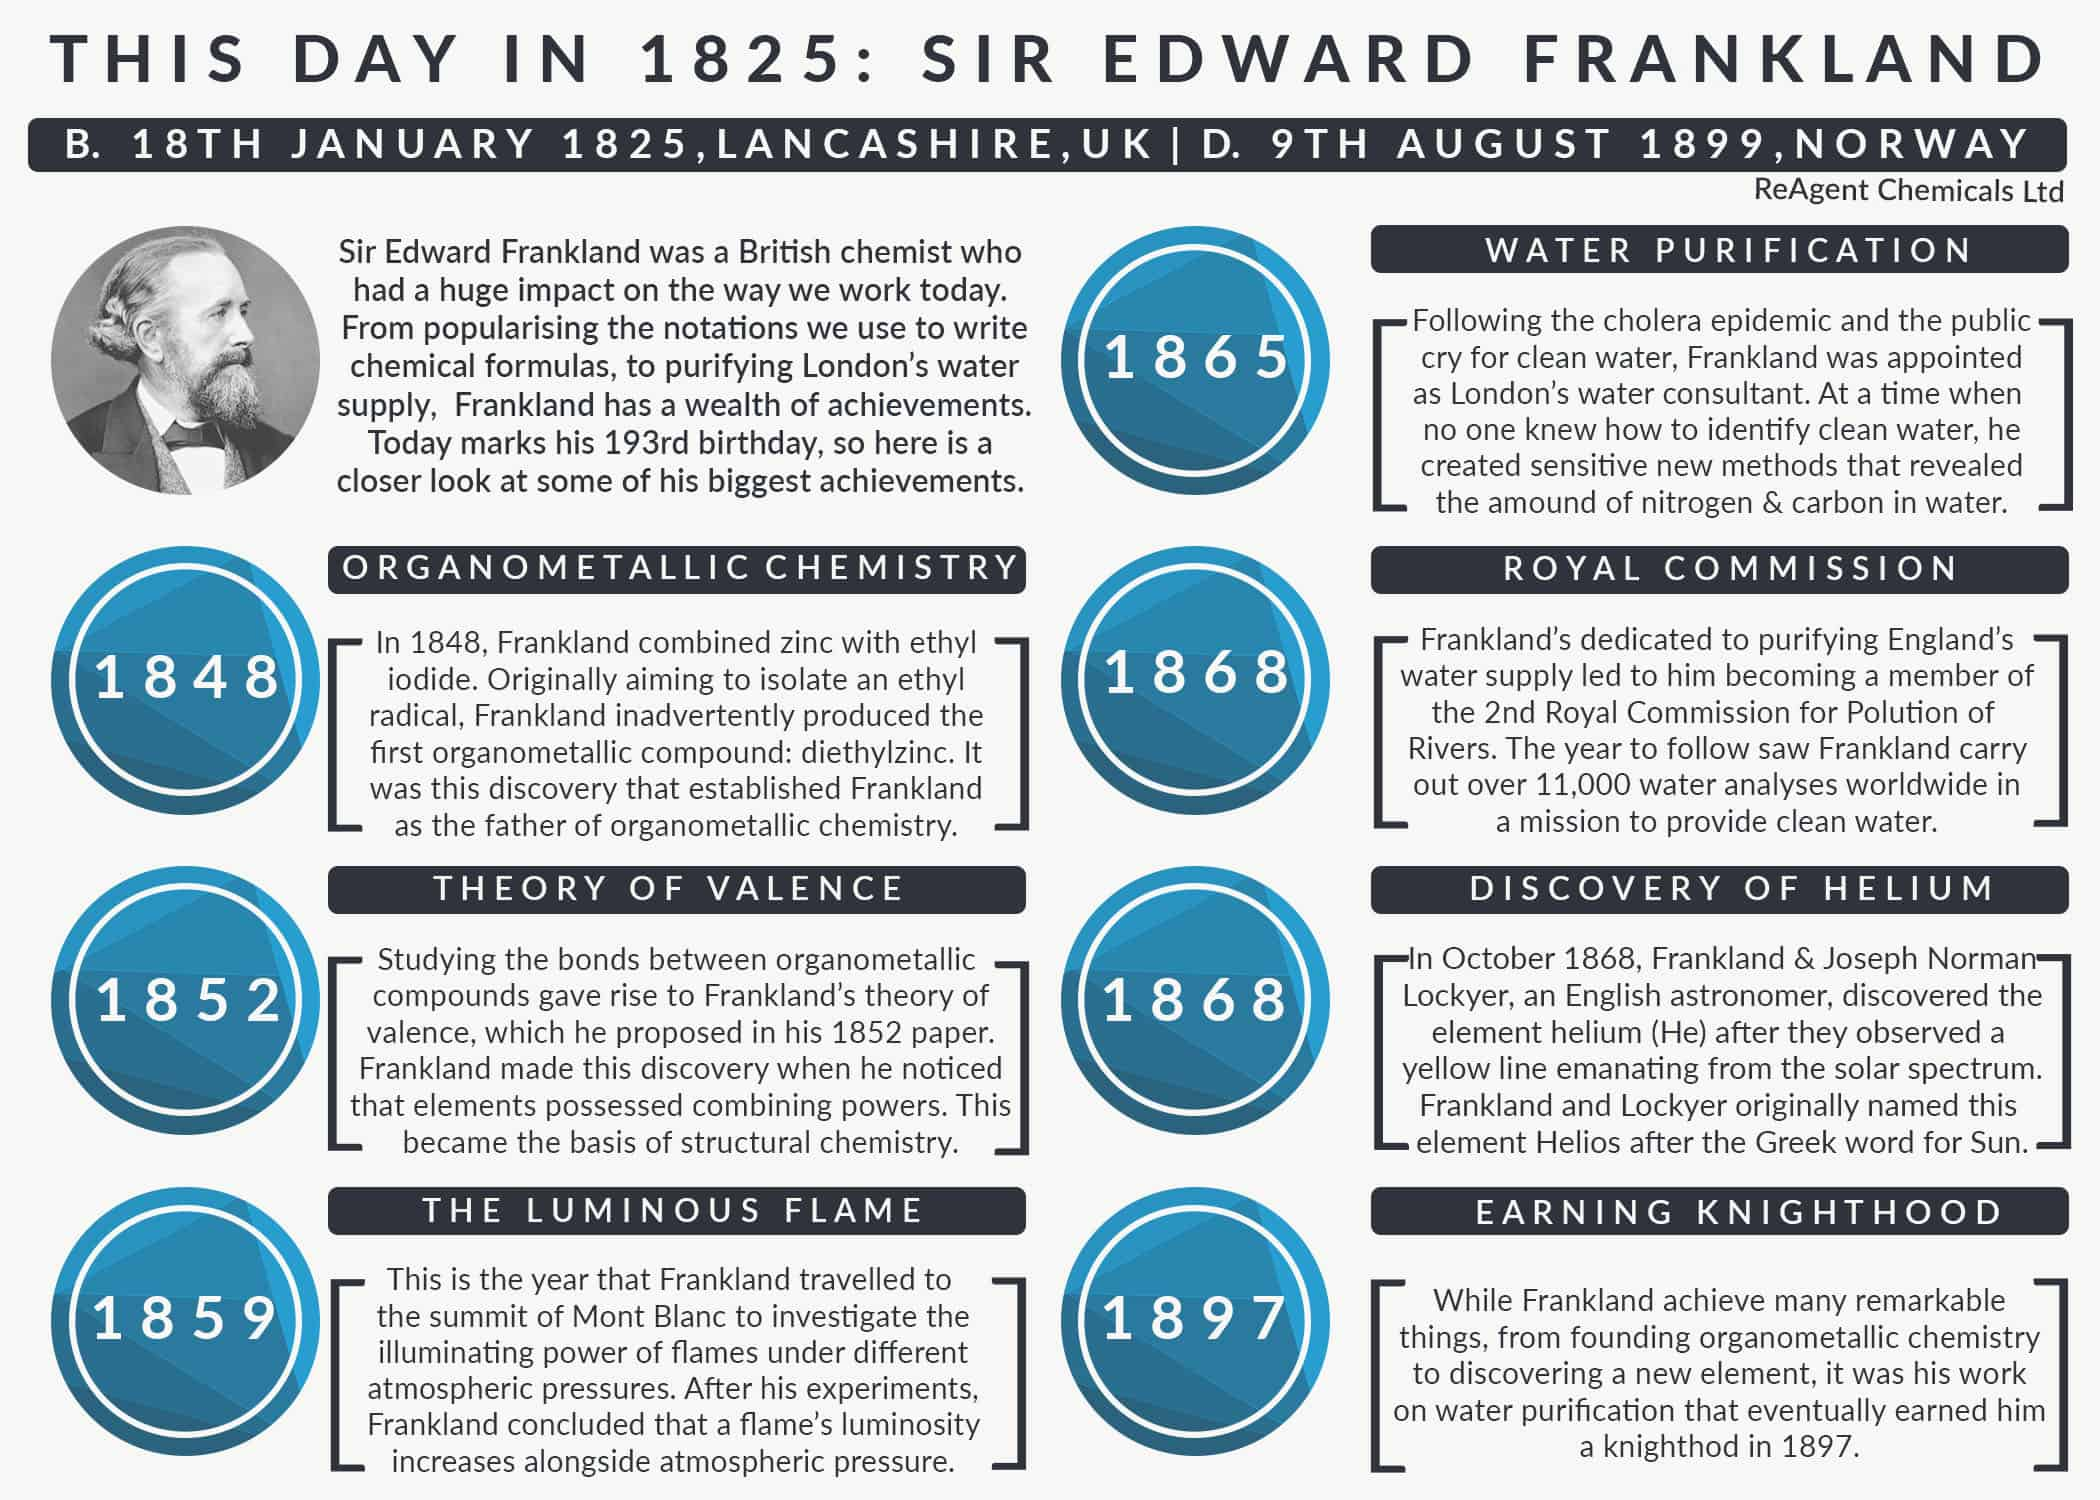 An infographic that lists Sir Edward Frankland's achievements